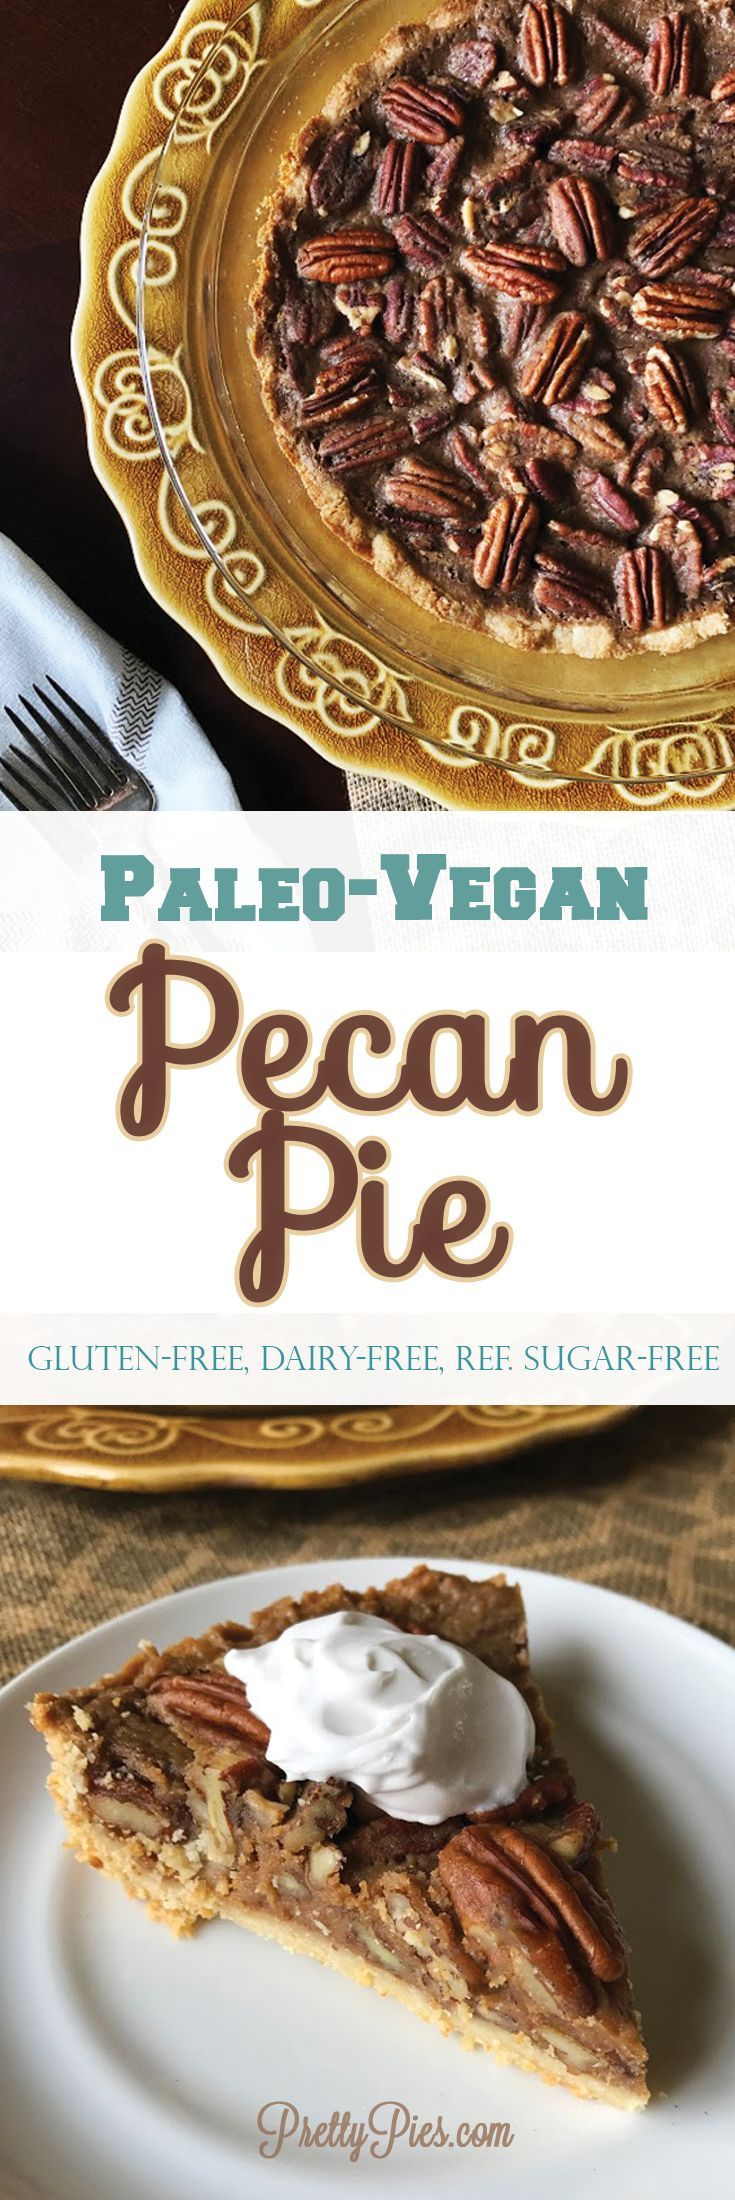 The ultimate Pecan Pie made with 7 un-processed ingredients (no dairy, gluten/grains, eggs or refined sugar) #paleo #vegan Perfect for #Thanksgiving - PrettyPies.com